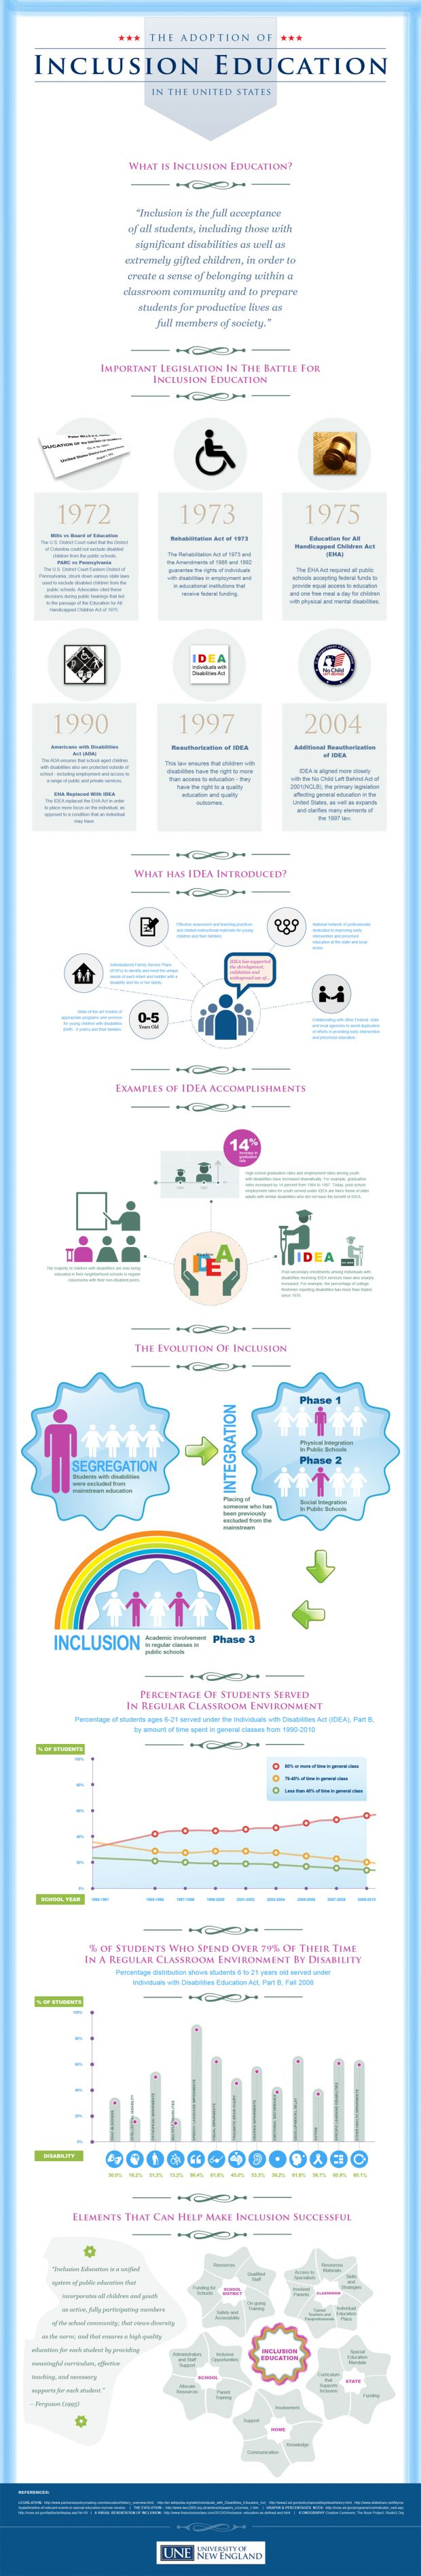 """""""The Adoption of Inclusion Education in the United States""""  (#INFOGRAPHIC)"""